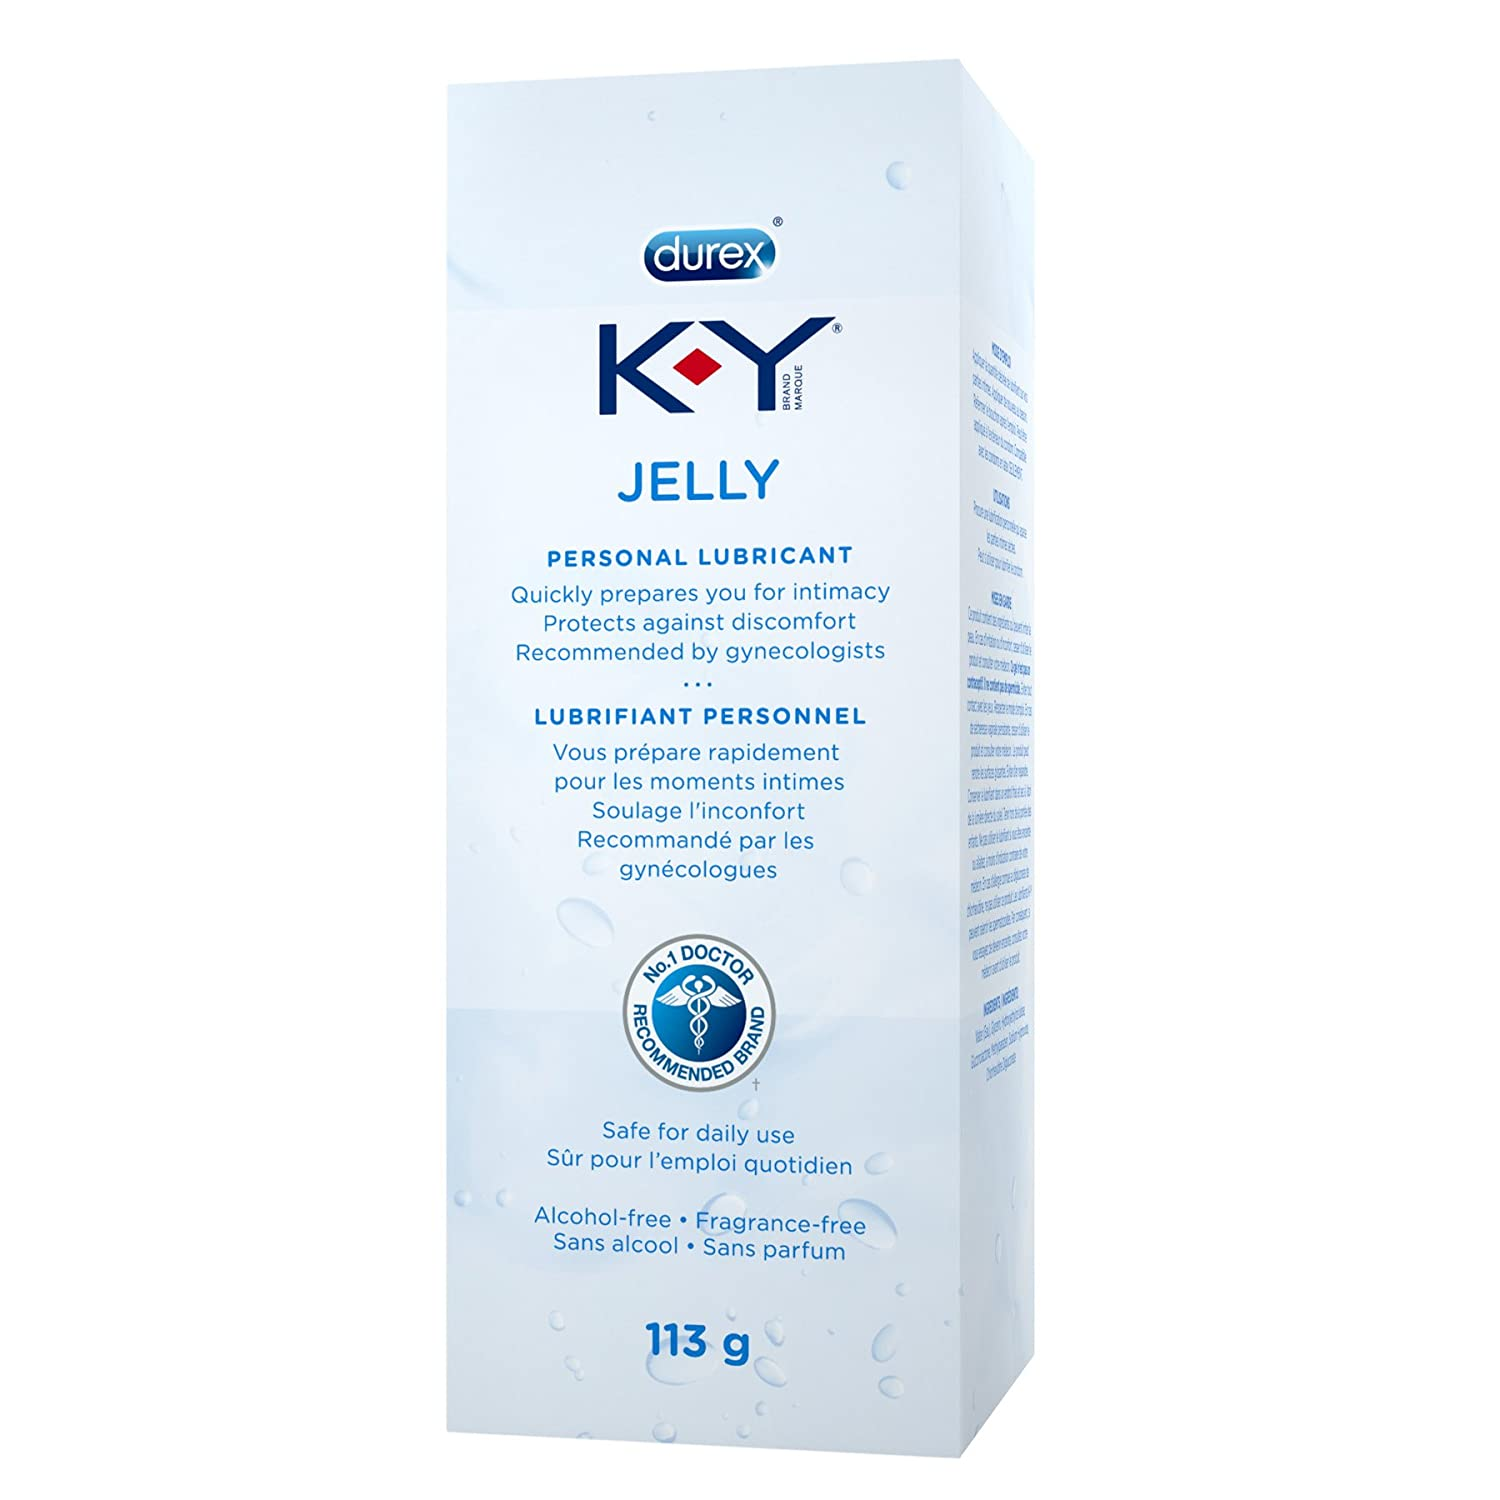 Ky jelly personal lubricant